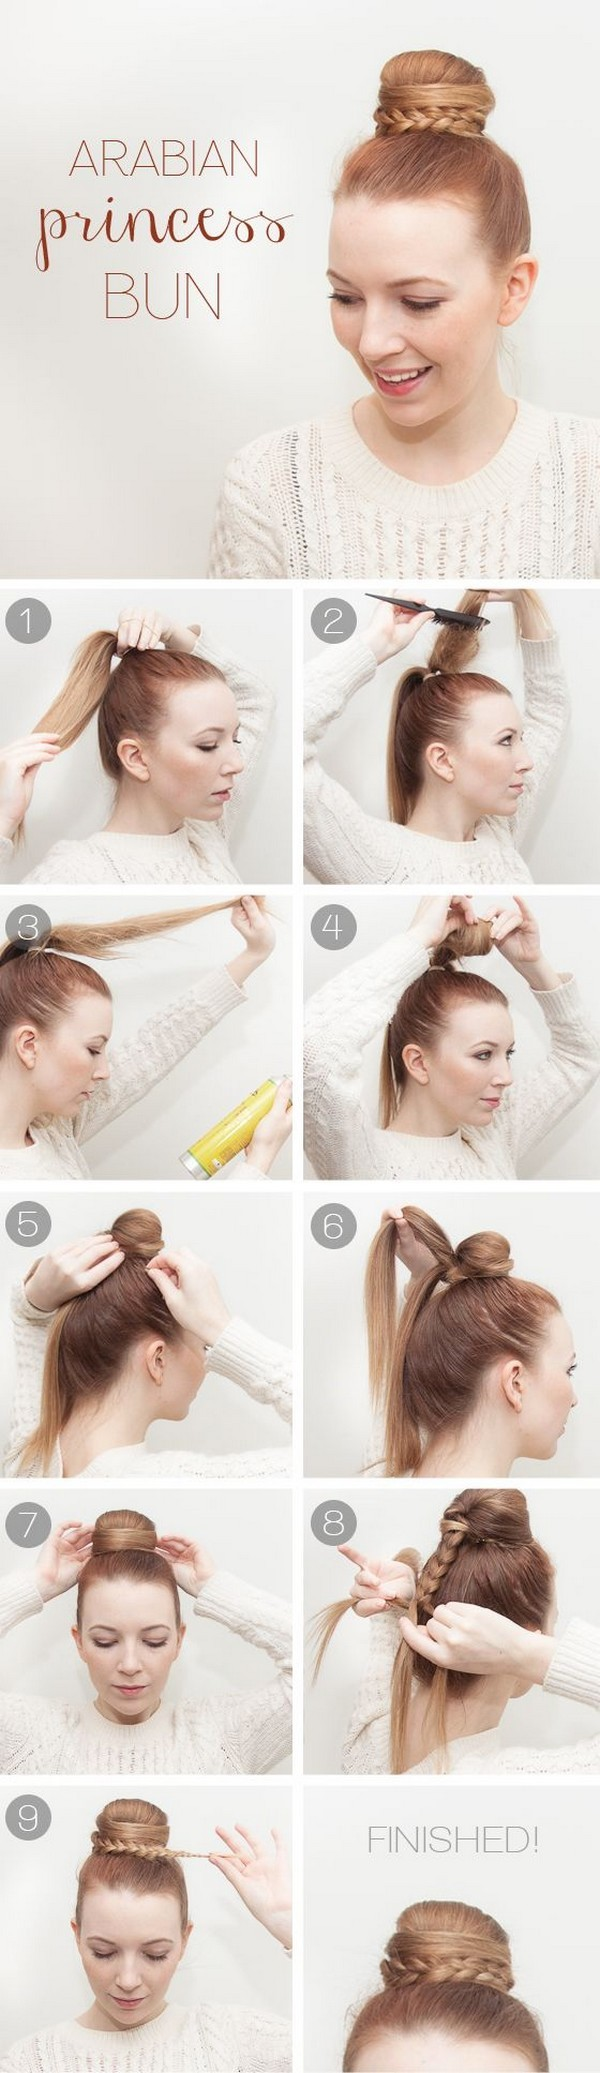 Simple Hairstyles For College Hair Tutorial Hairstyles For College Girls Hairstyles Ideas